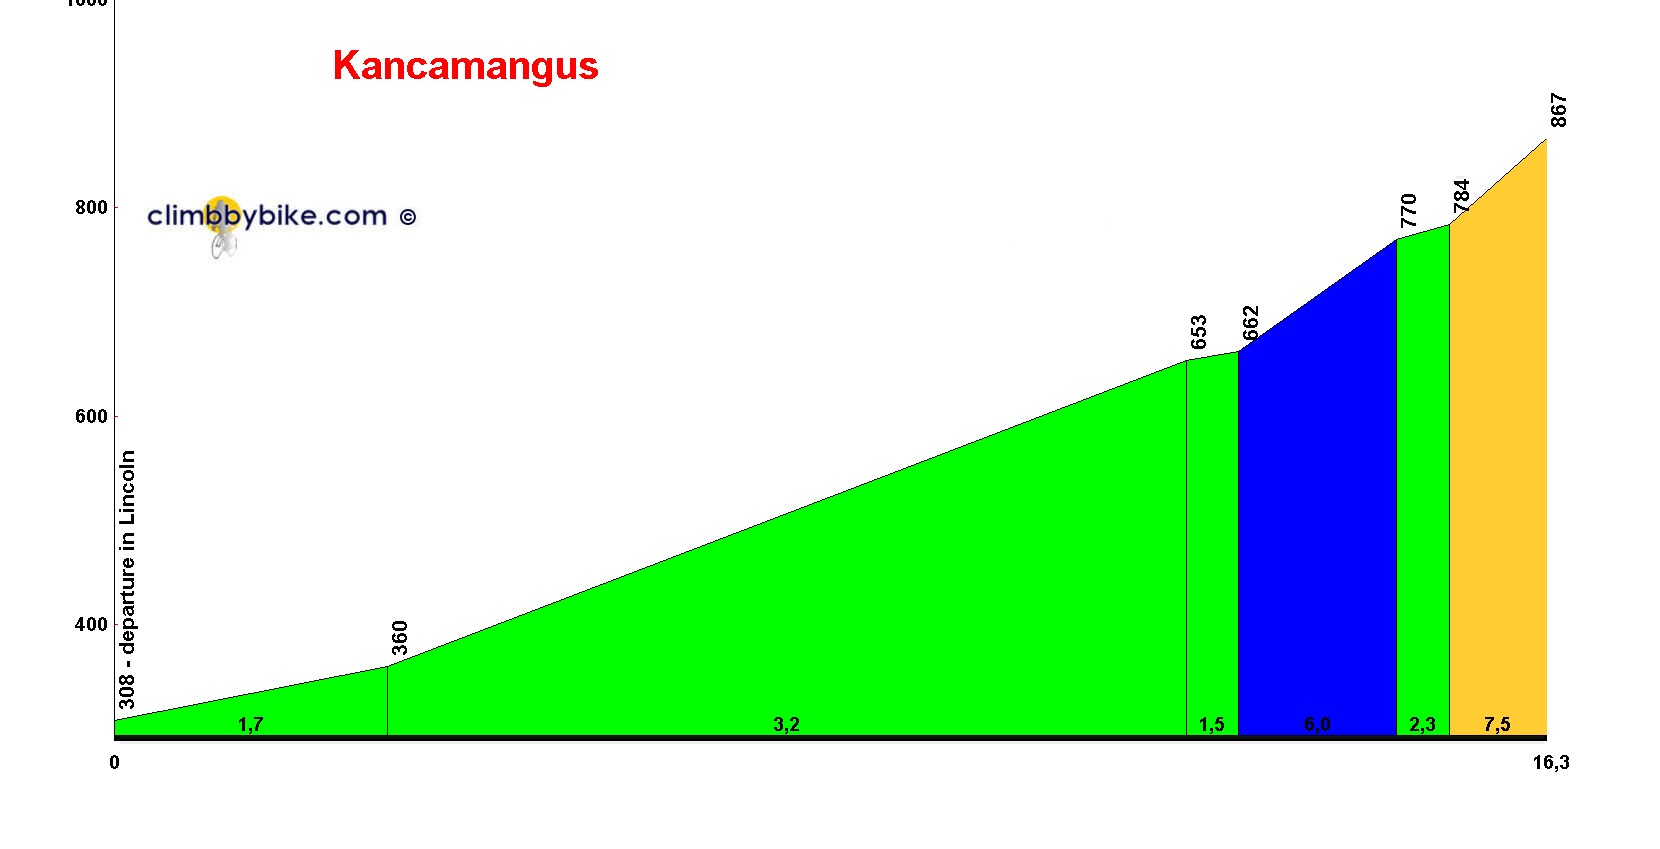 Elevation profile for Kancamangus